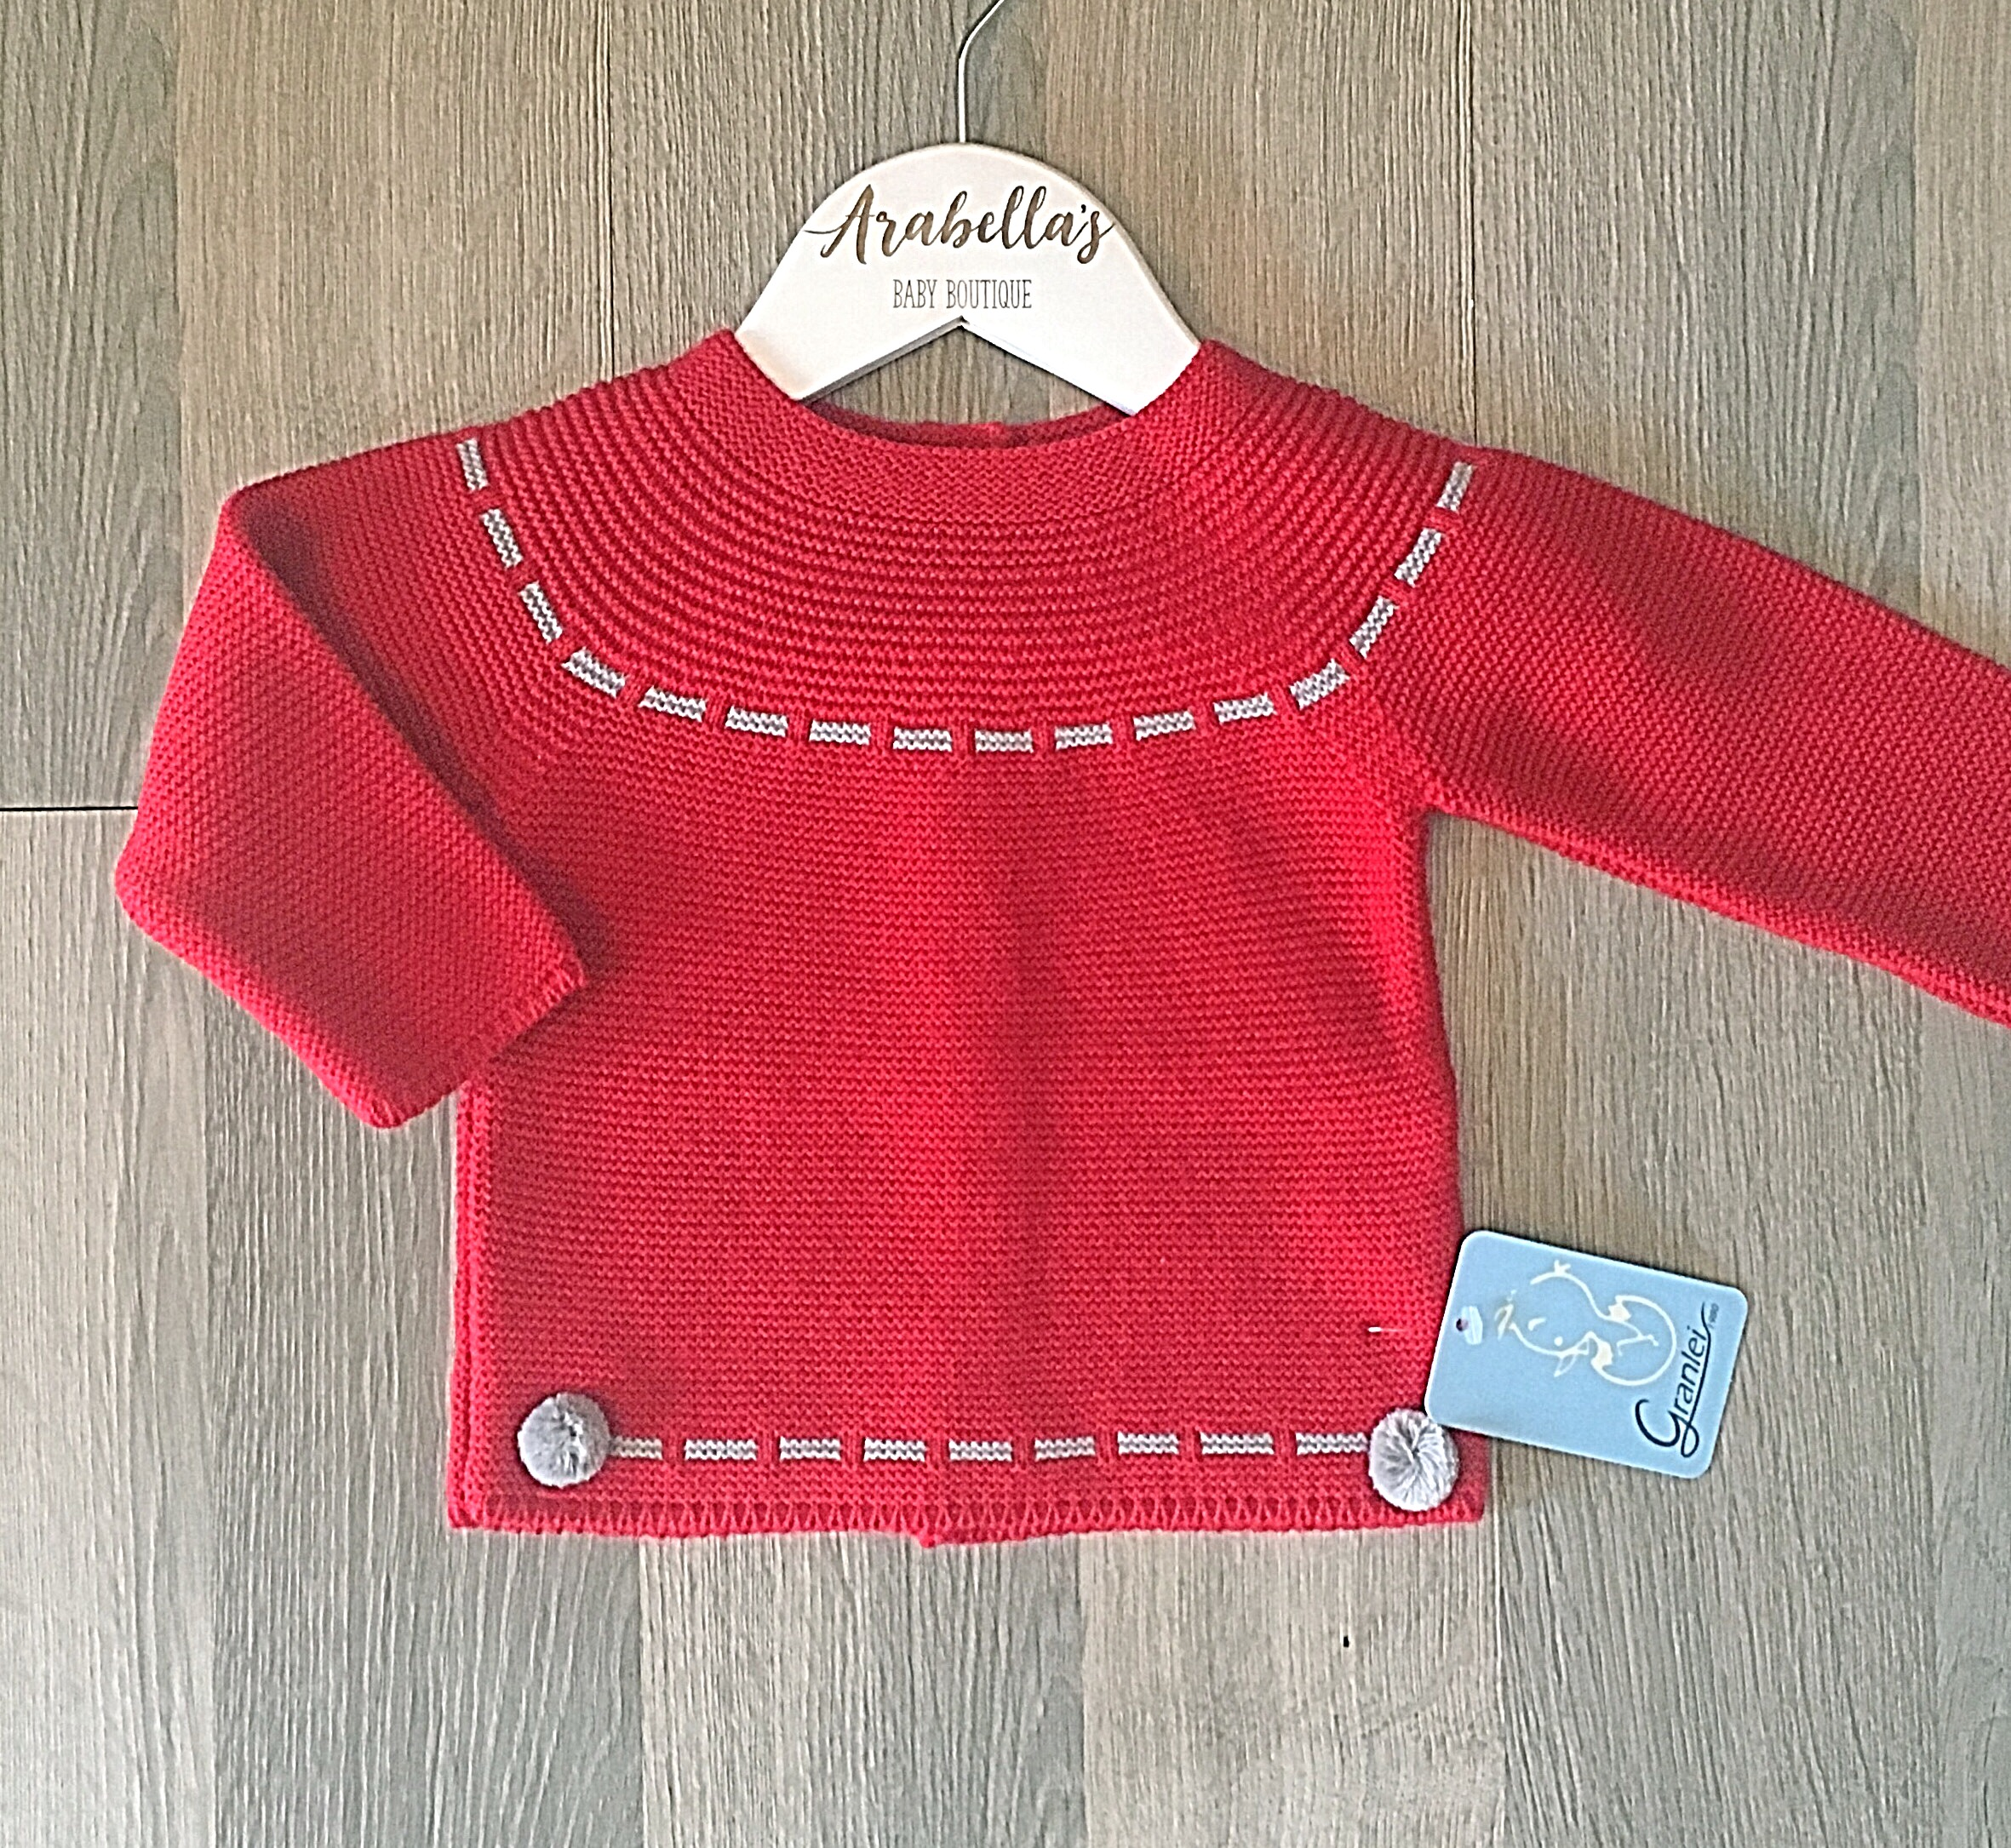 Baby Christmas outfits Arabella s Baby Boutique